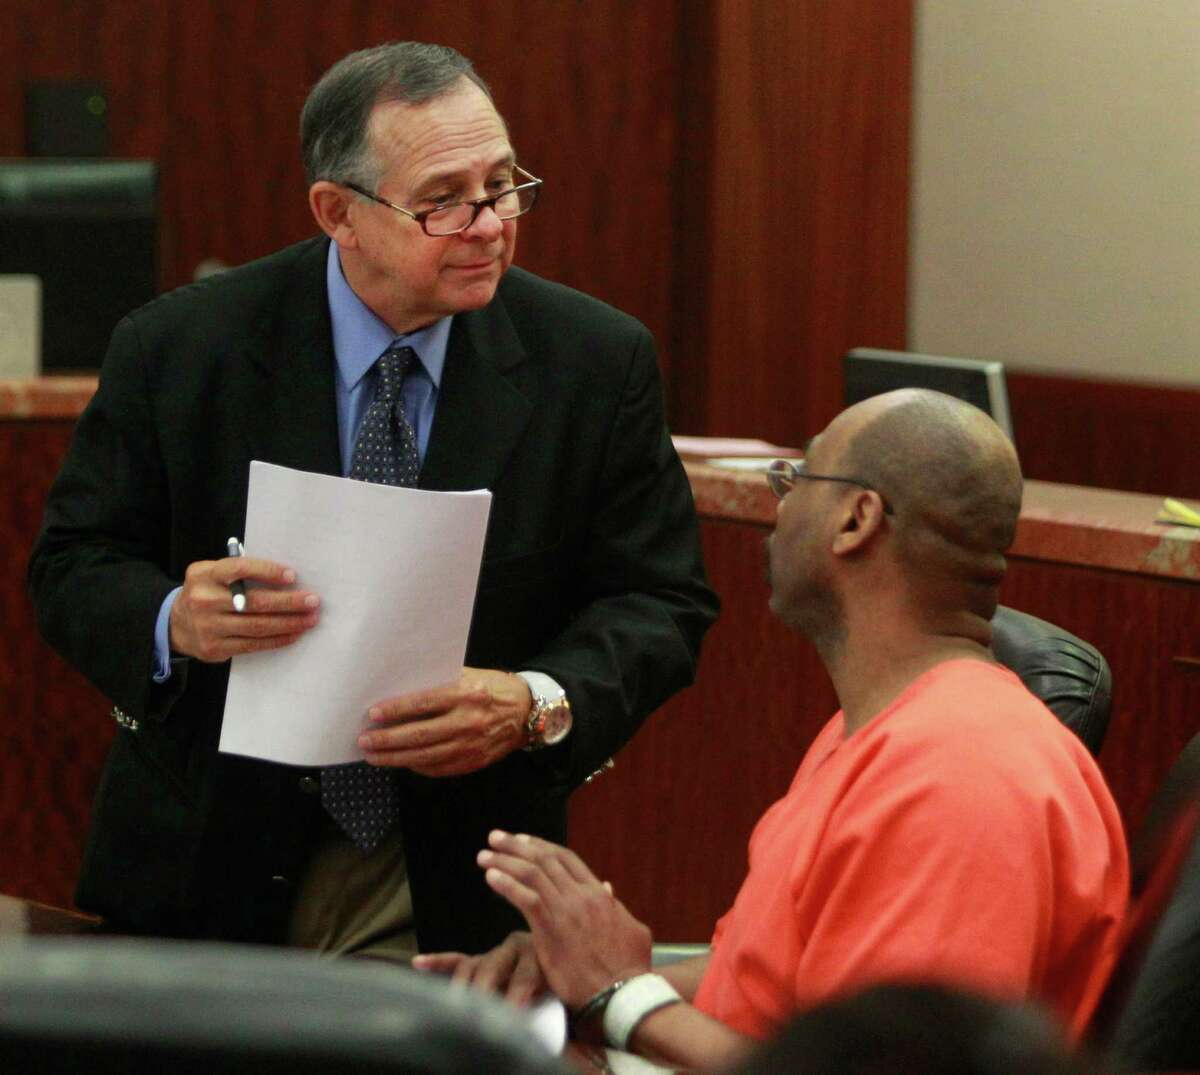 Defense attorney Gerald Bourque, left, says he has clients whose cases have been affected by revelations of possible crime lab misconduct, including Larry Lee Lewis, right, who is accused of capital murder.